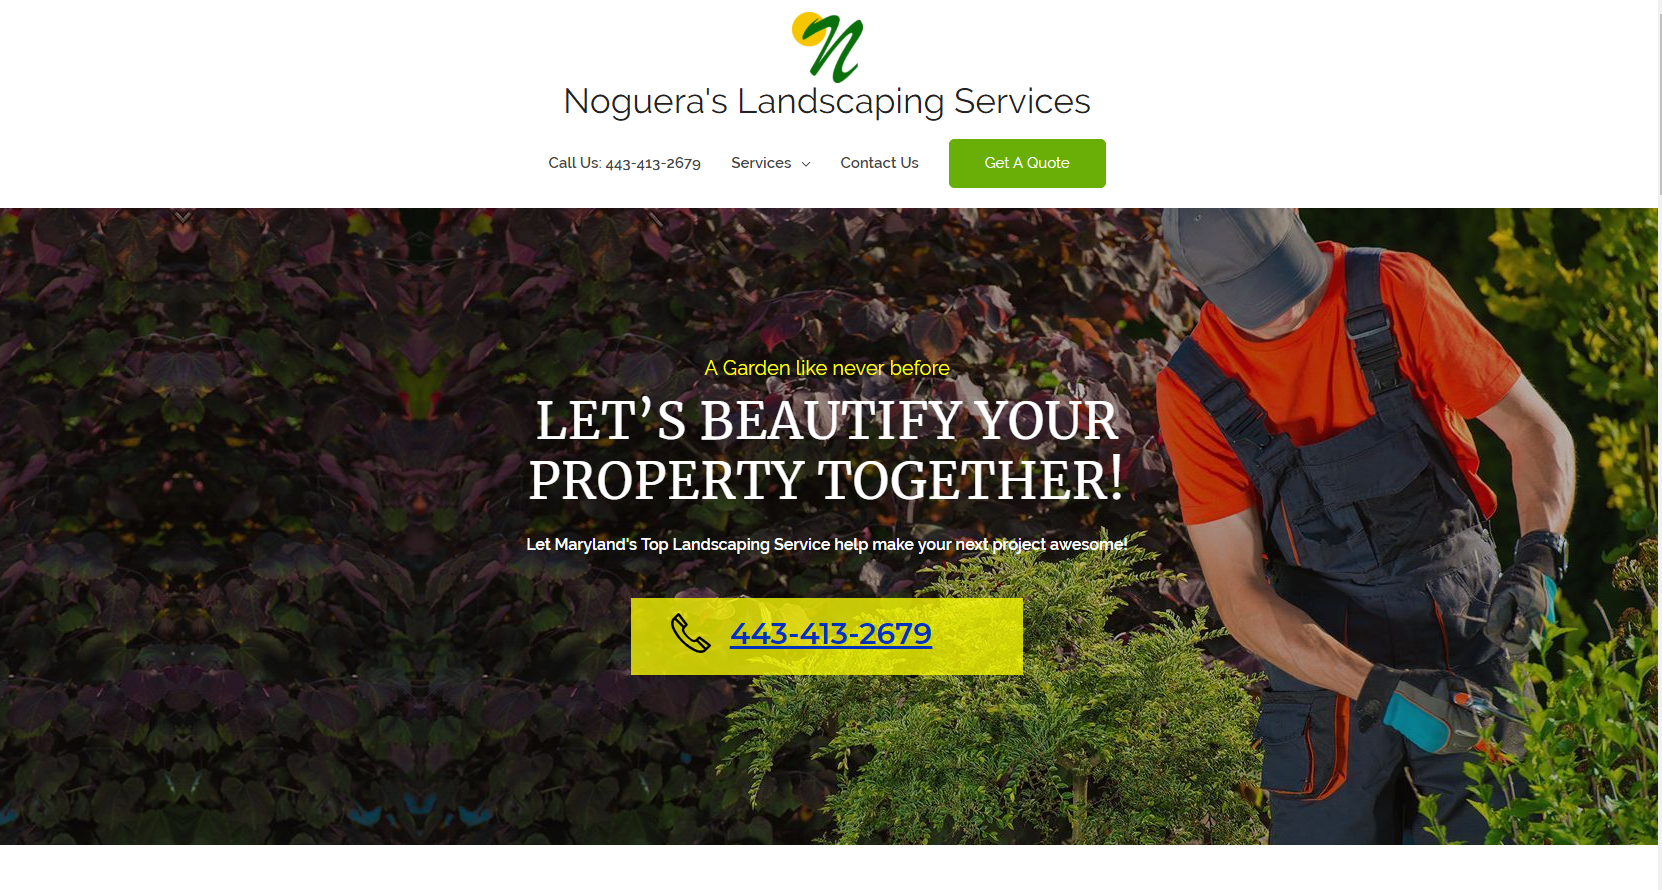 Noguera's Landscaping